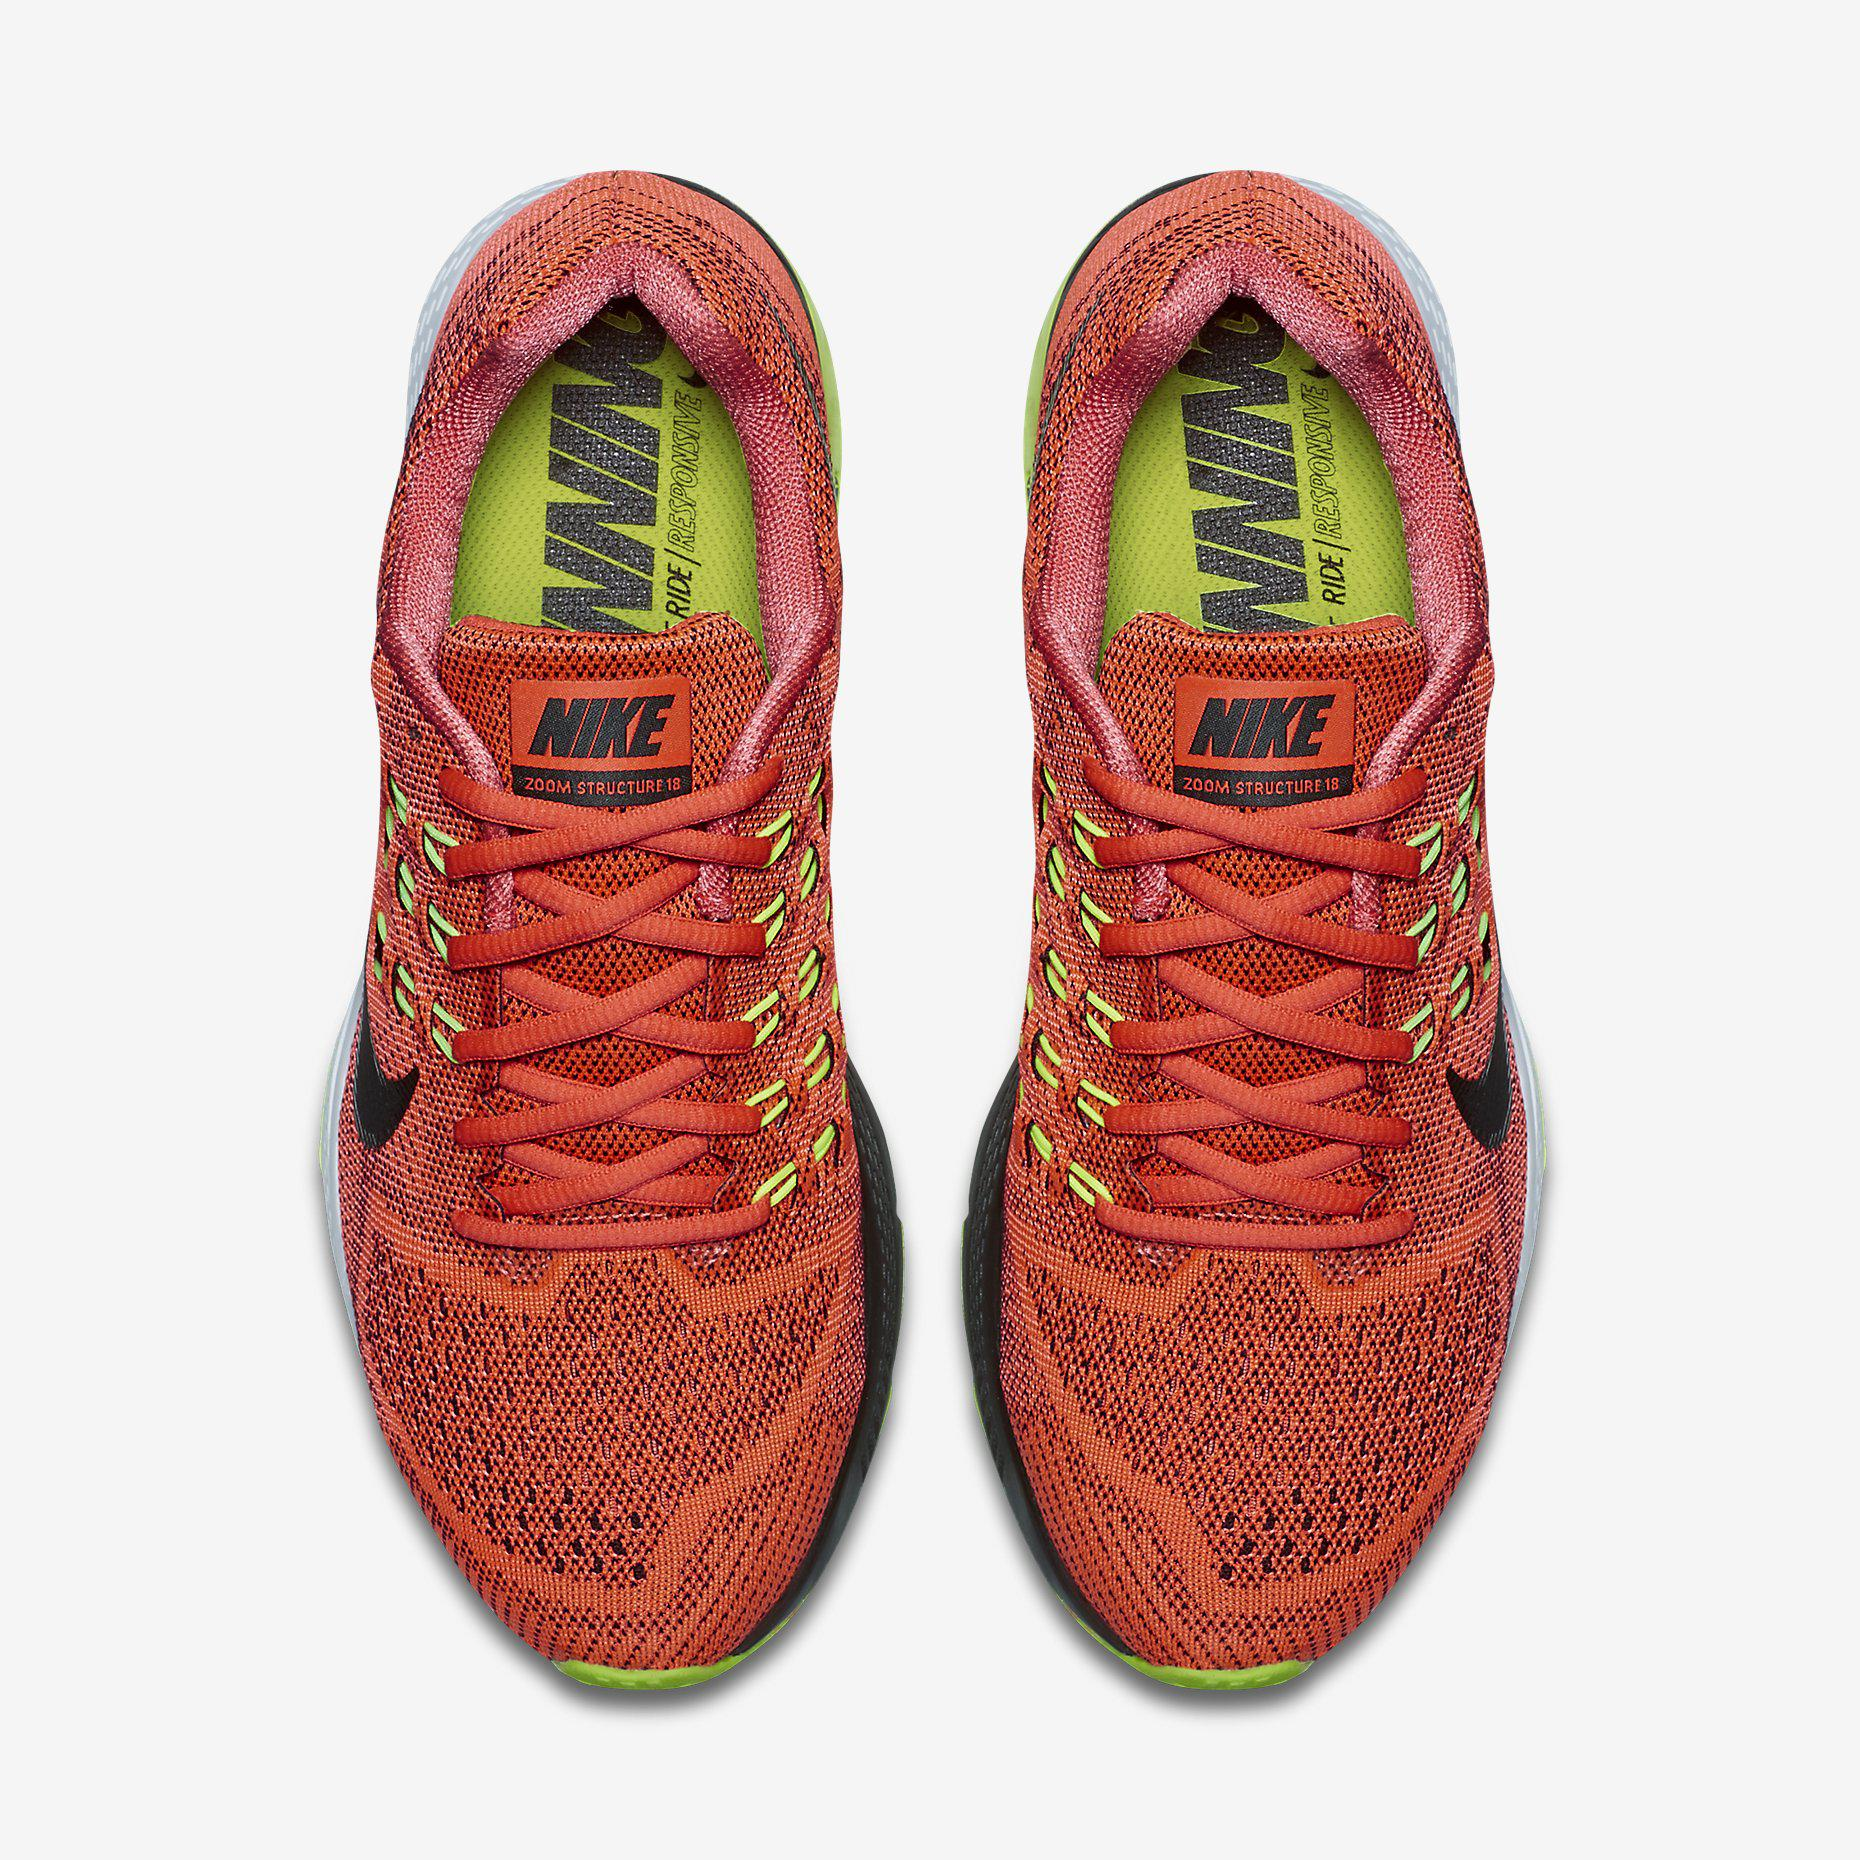 best website c7dc1 59a0f Nike Mens Air Zoom Structure 18 Running Shoes - Bright Crimson/Black